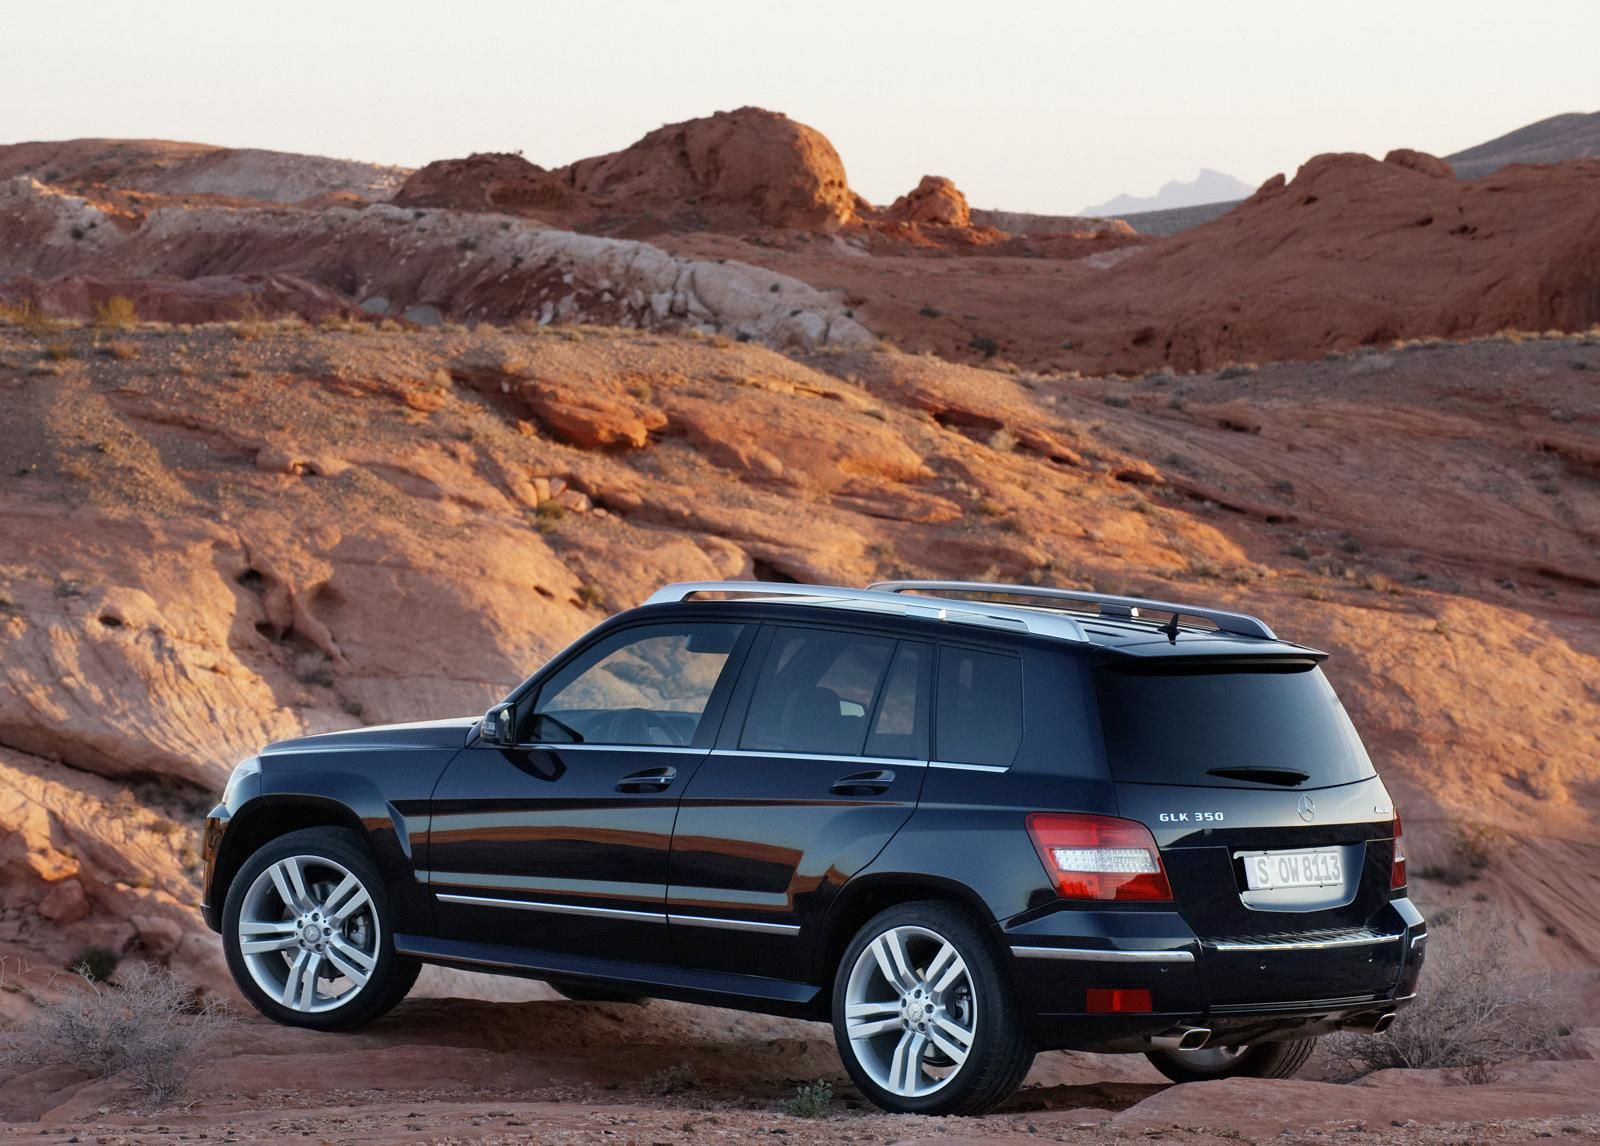 saw this car today and fell in love mercedes benz glk 350 mercedes glk mercedes benz suv mercedes pinterest